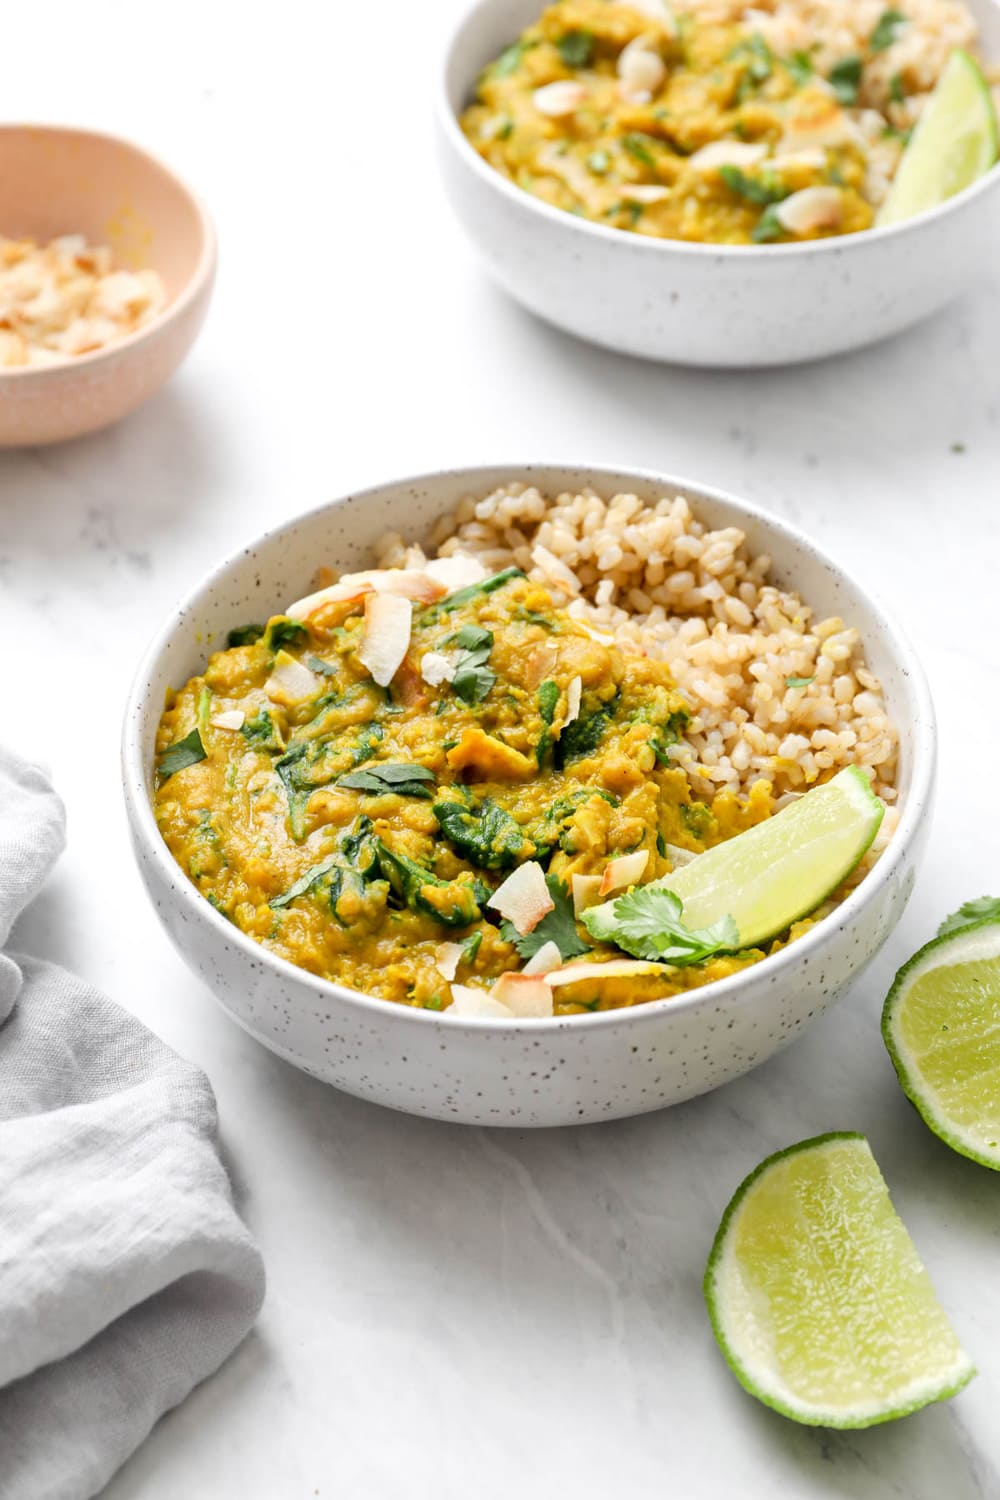 30 minute red lentil curry with cilantro and greens.